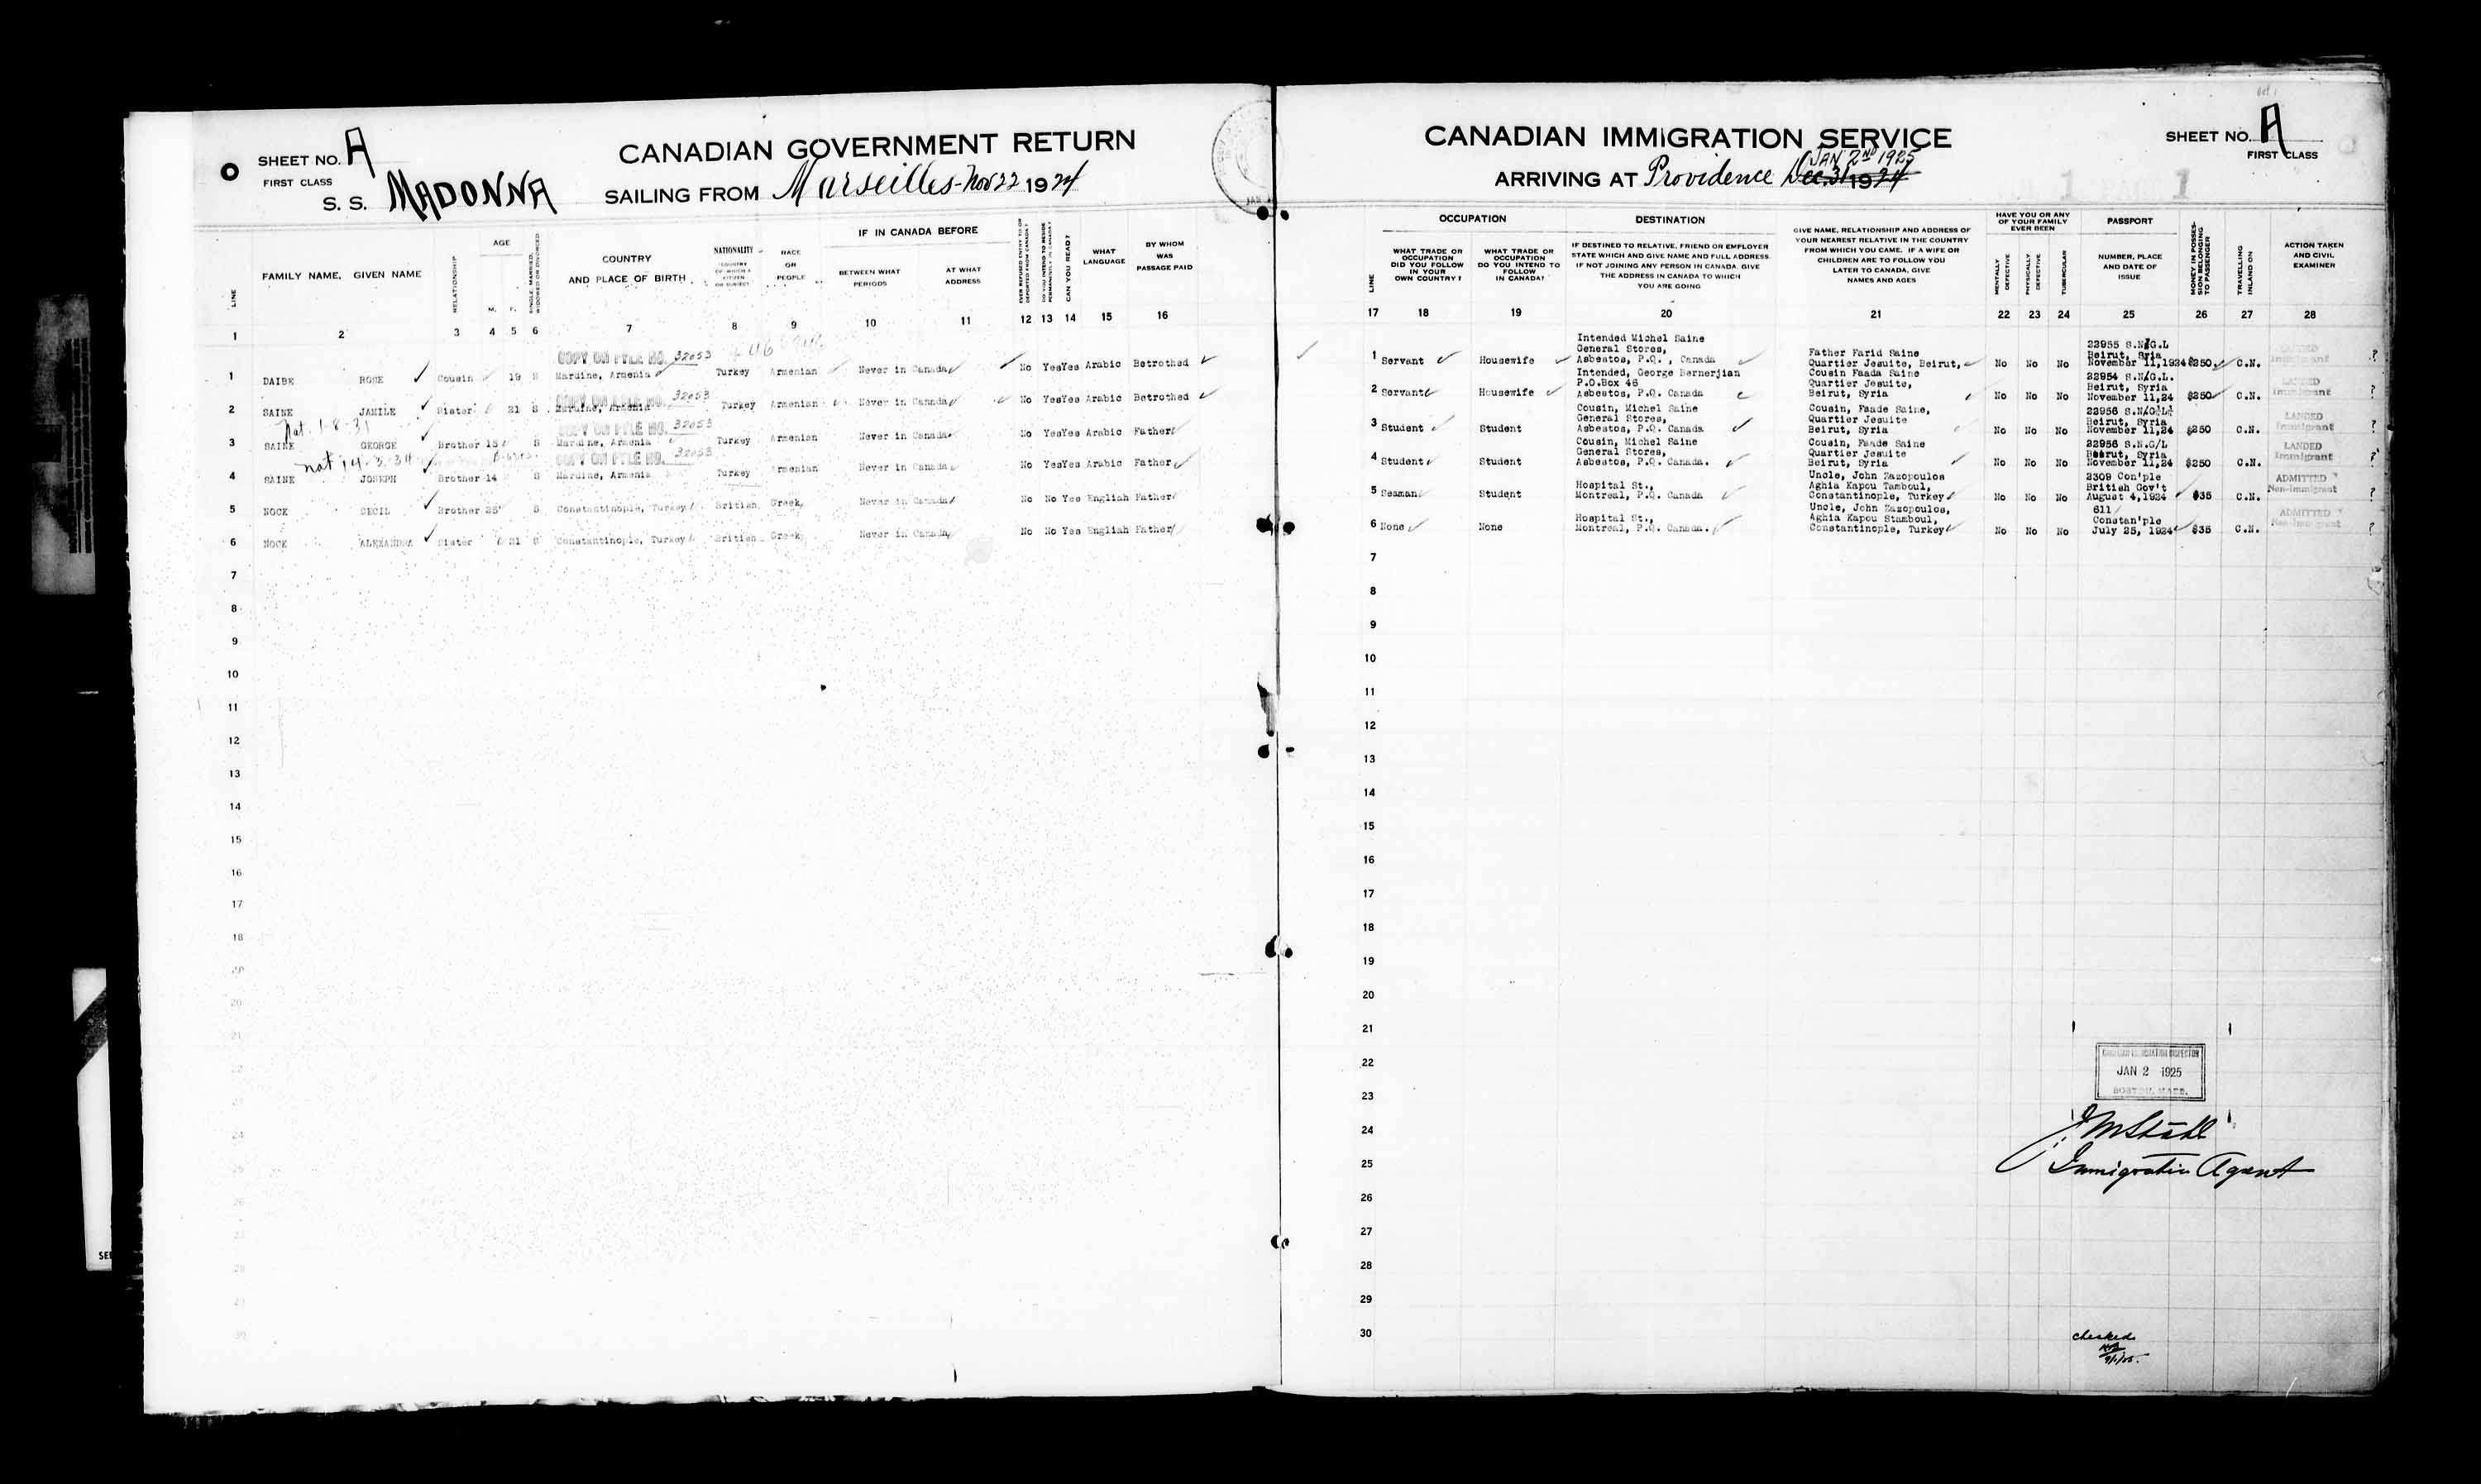 Title: Passenger Lists: Eastern U.S. Ports (1925-1935) - Mikan Number: 161344 - Microform: t-14938